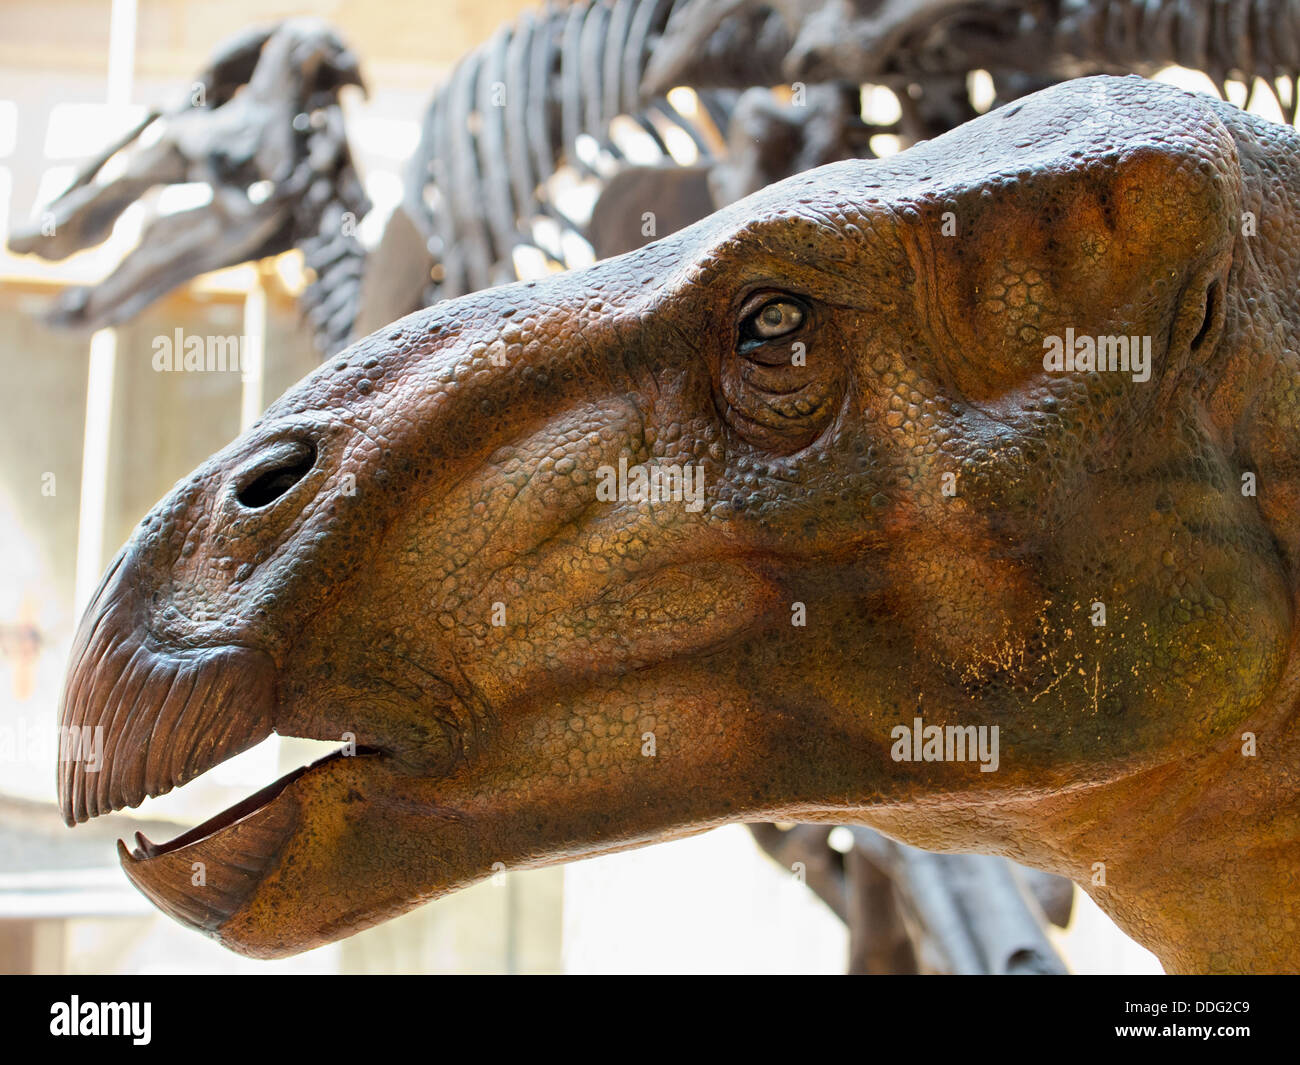 Dinosaur bones at the Pitt Rivers Natural History Museum, Oxford 3 - Stock Image